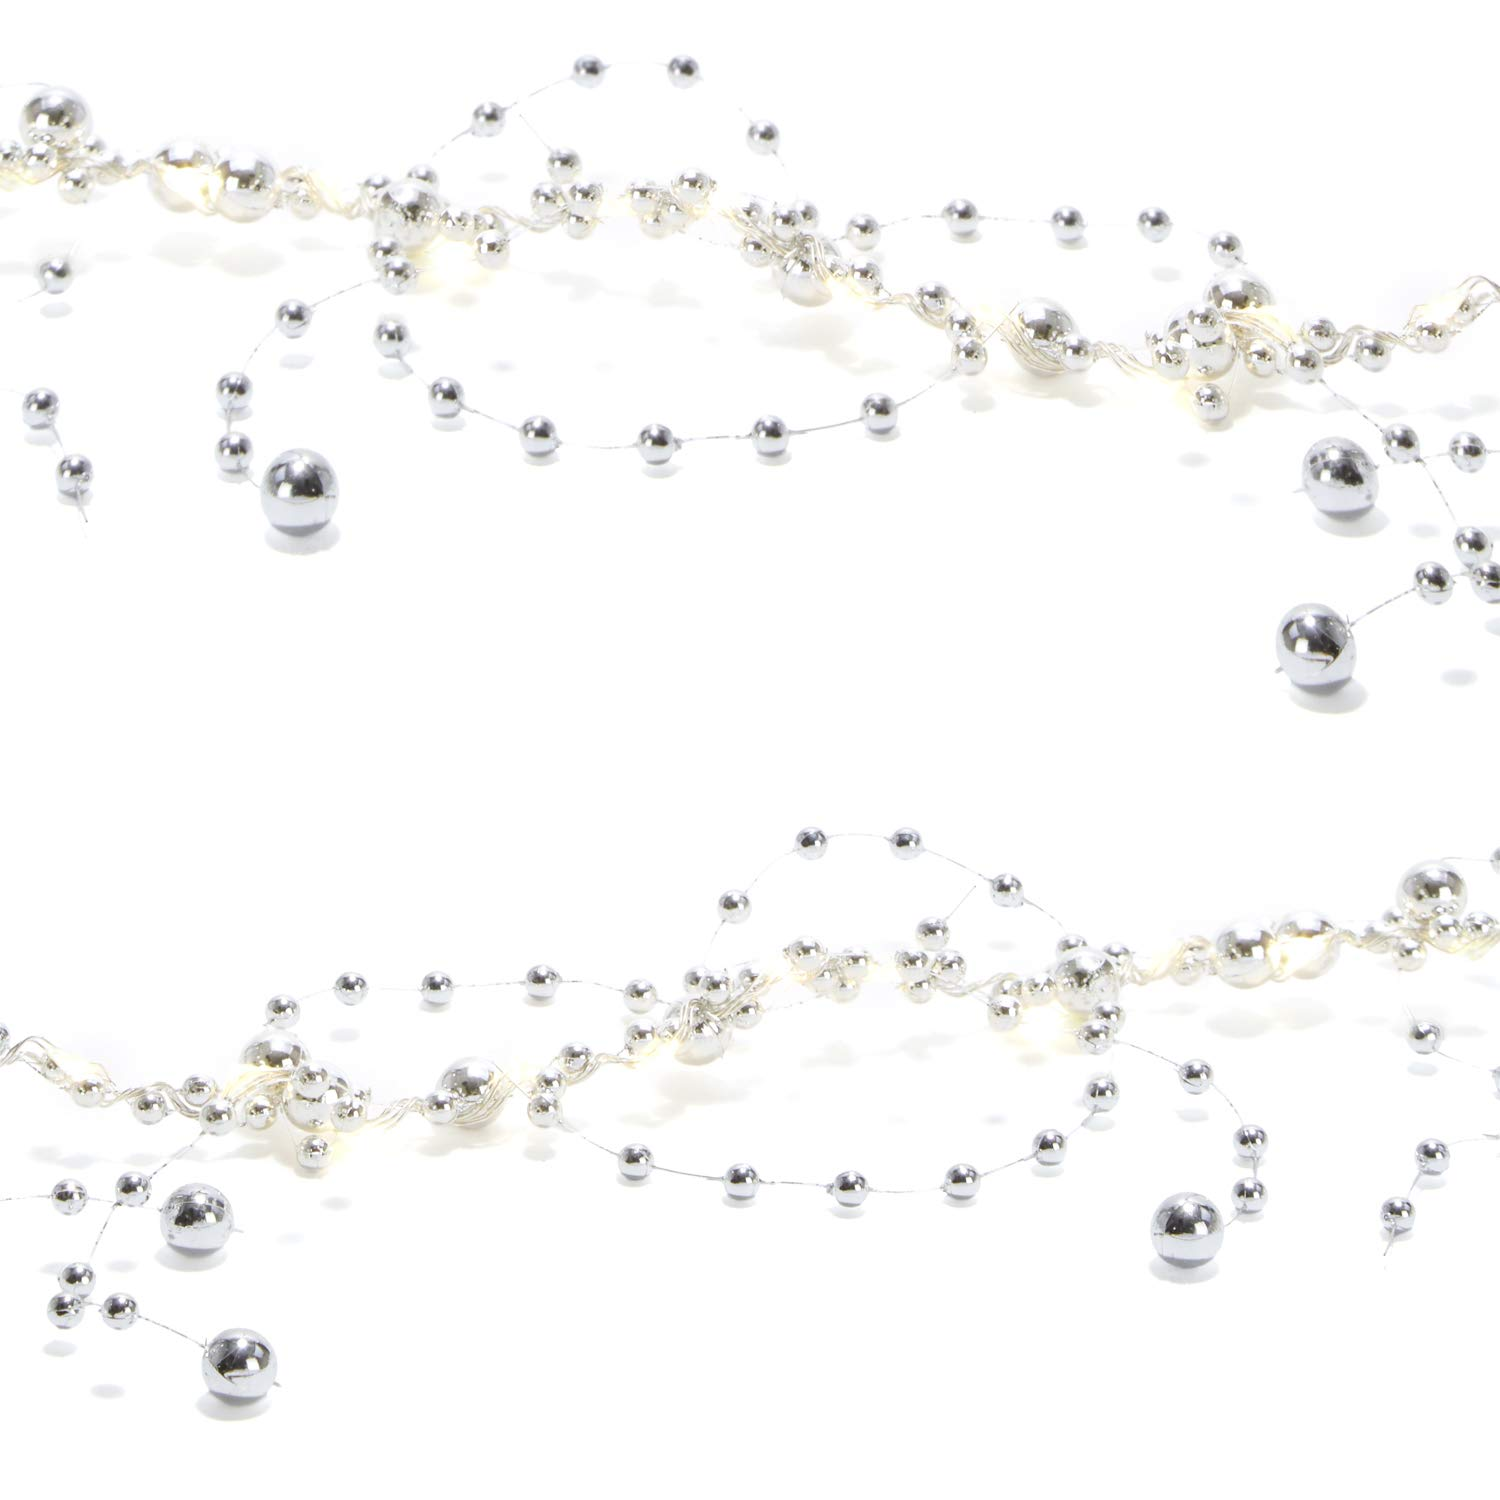 LampLust LED Garland String Light with Acrylic Crystal Beads 7.5 ft Timer Option Available Warm White Glow Battery Operated